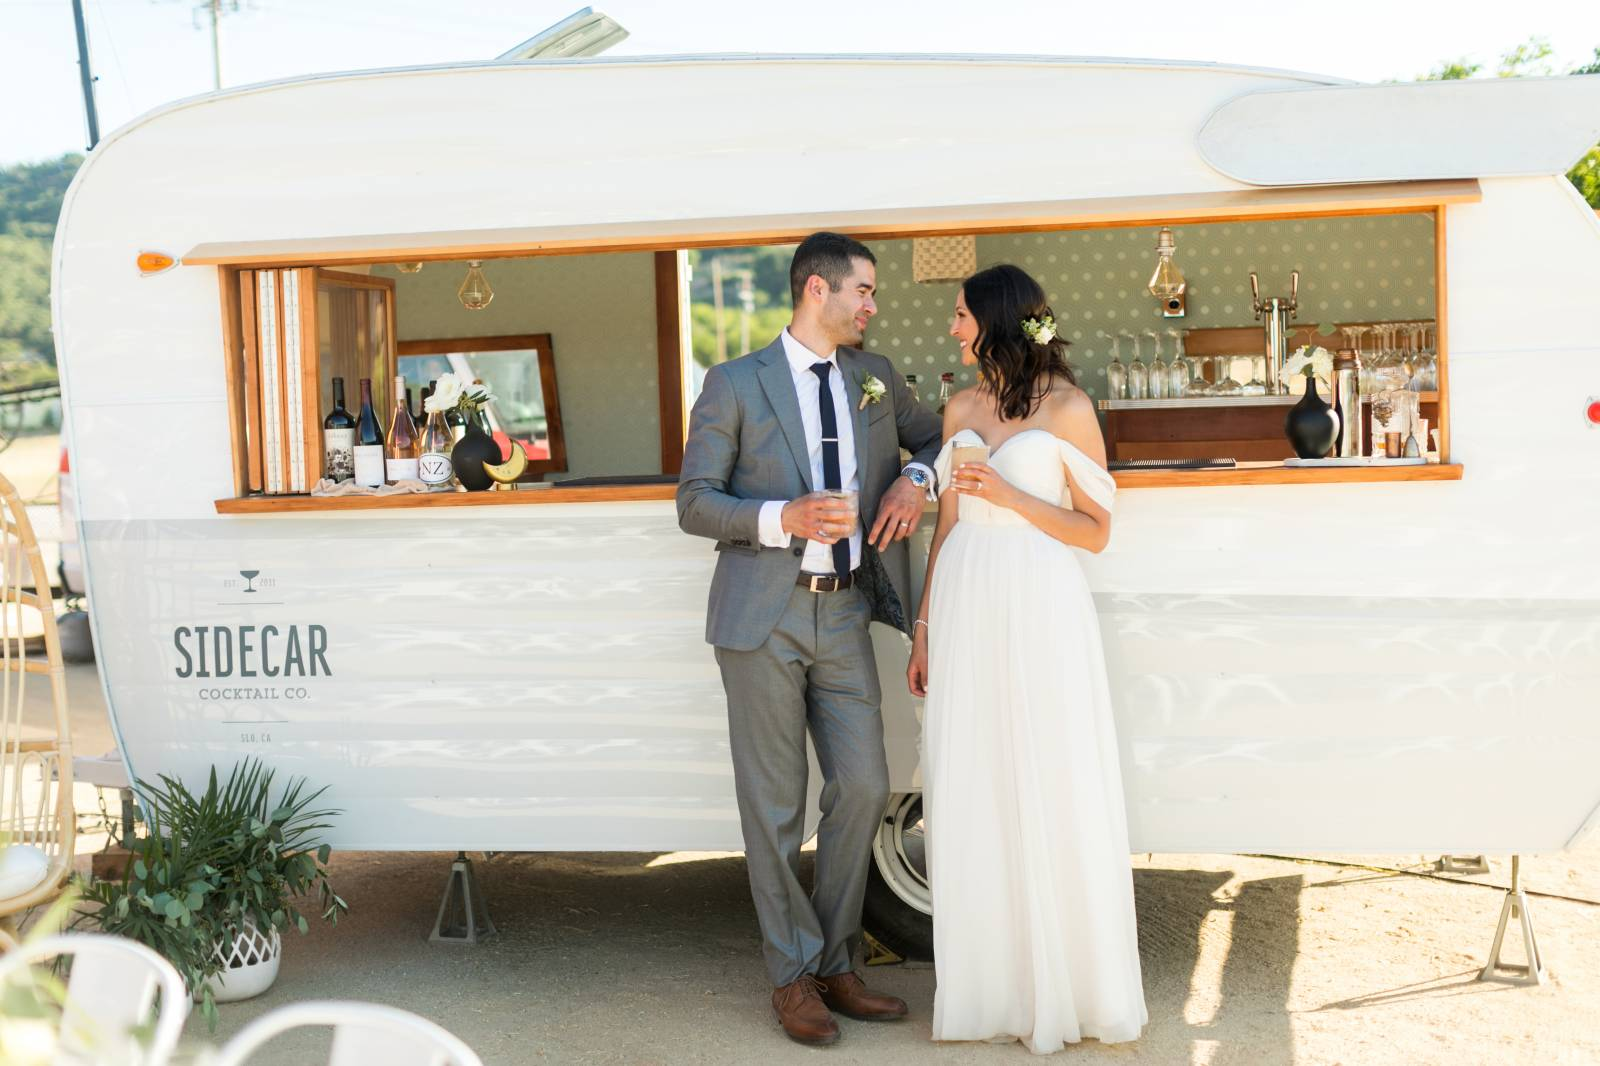 Sidecar - Amazing Dessert and Catering Trucks | The Wedding Standard